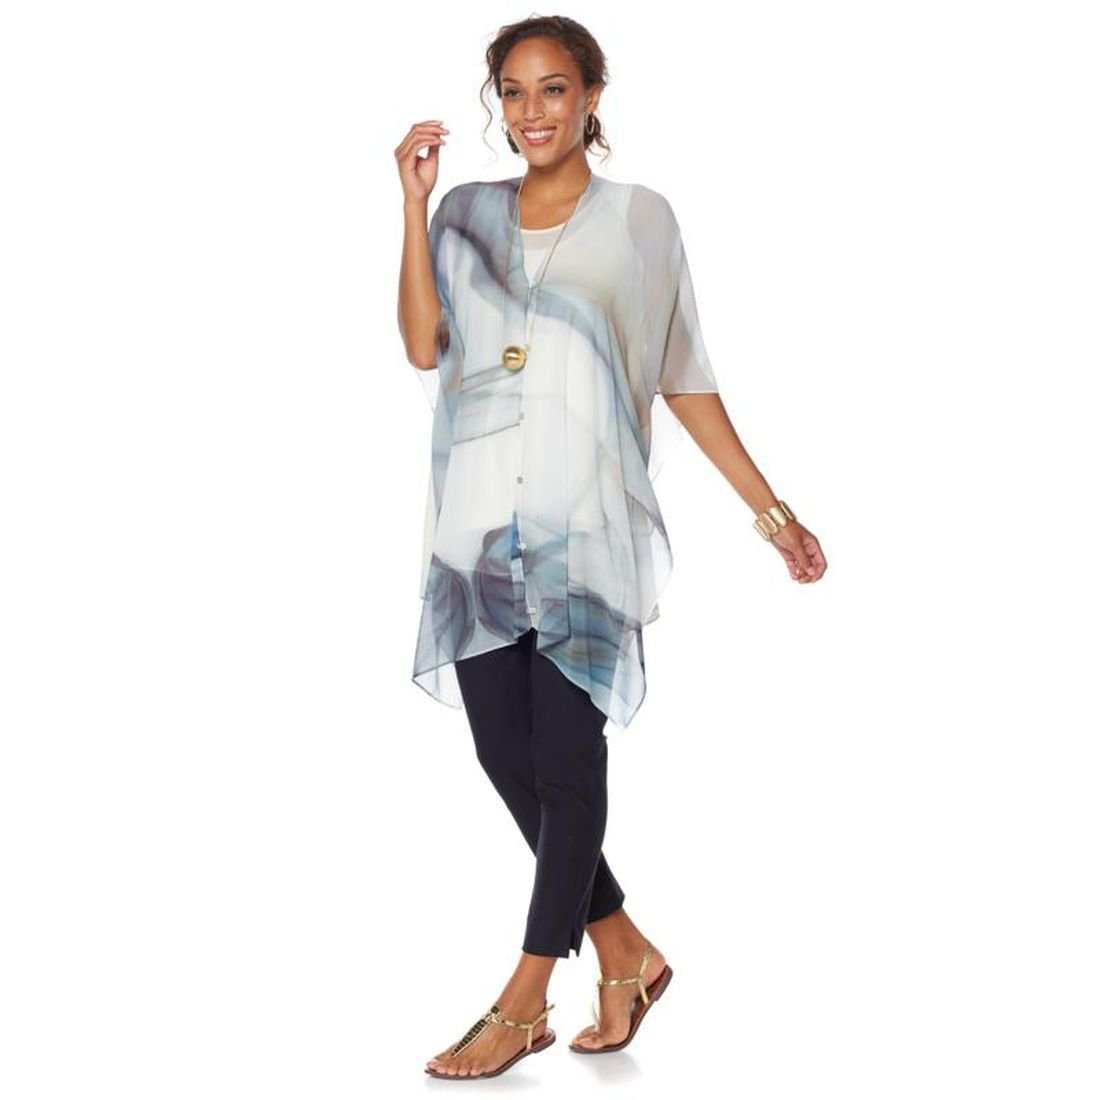 362d68820 MarlaWynne WynneLayers Convertible Woven Chiffon Overlay V-Neck Poncho  Black L New 542-763: Amazon.ca: Clothing & Accessories